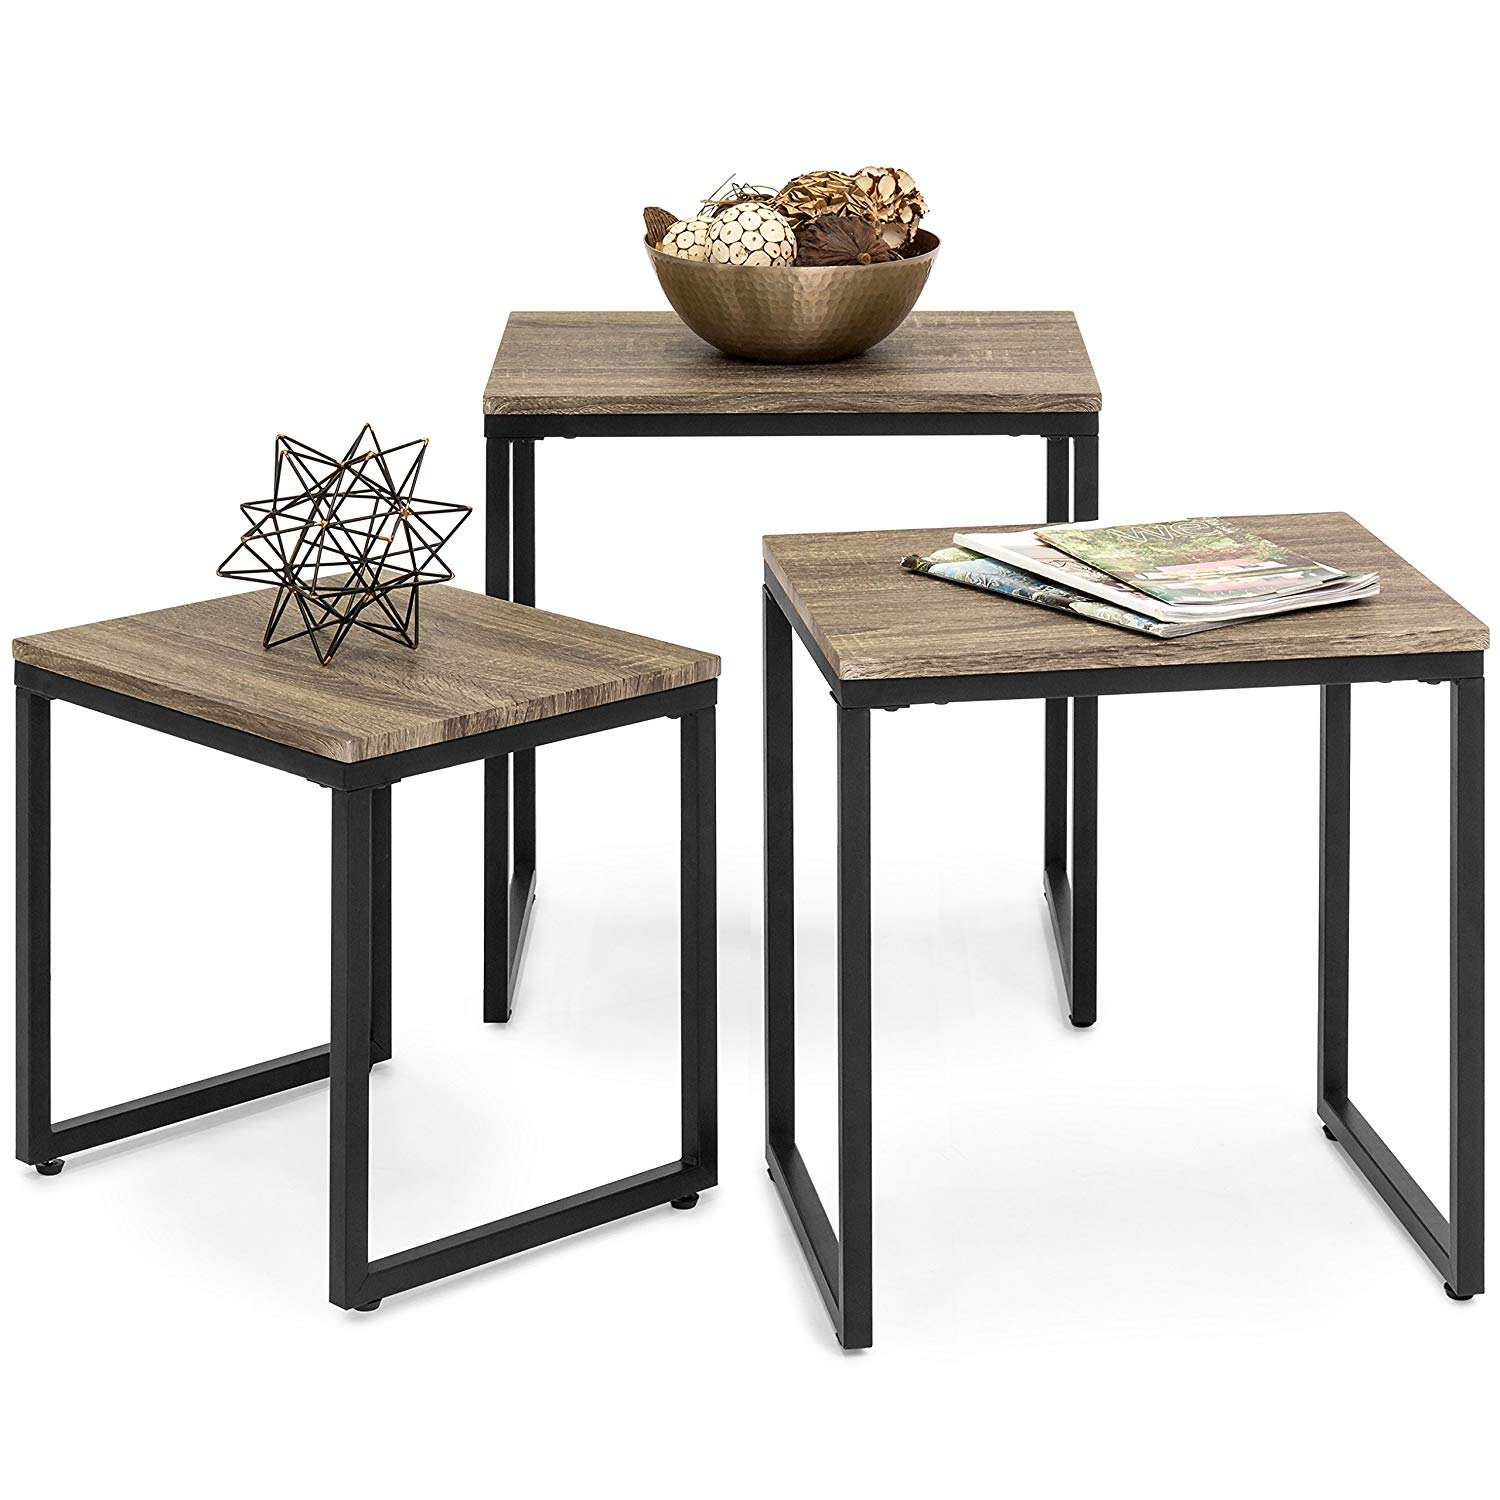 best choice products piece modern lightweight room essentials stacking accent table stackable nesting coffee end living furniture lounge set brown kitchen wooden plans pier one